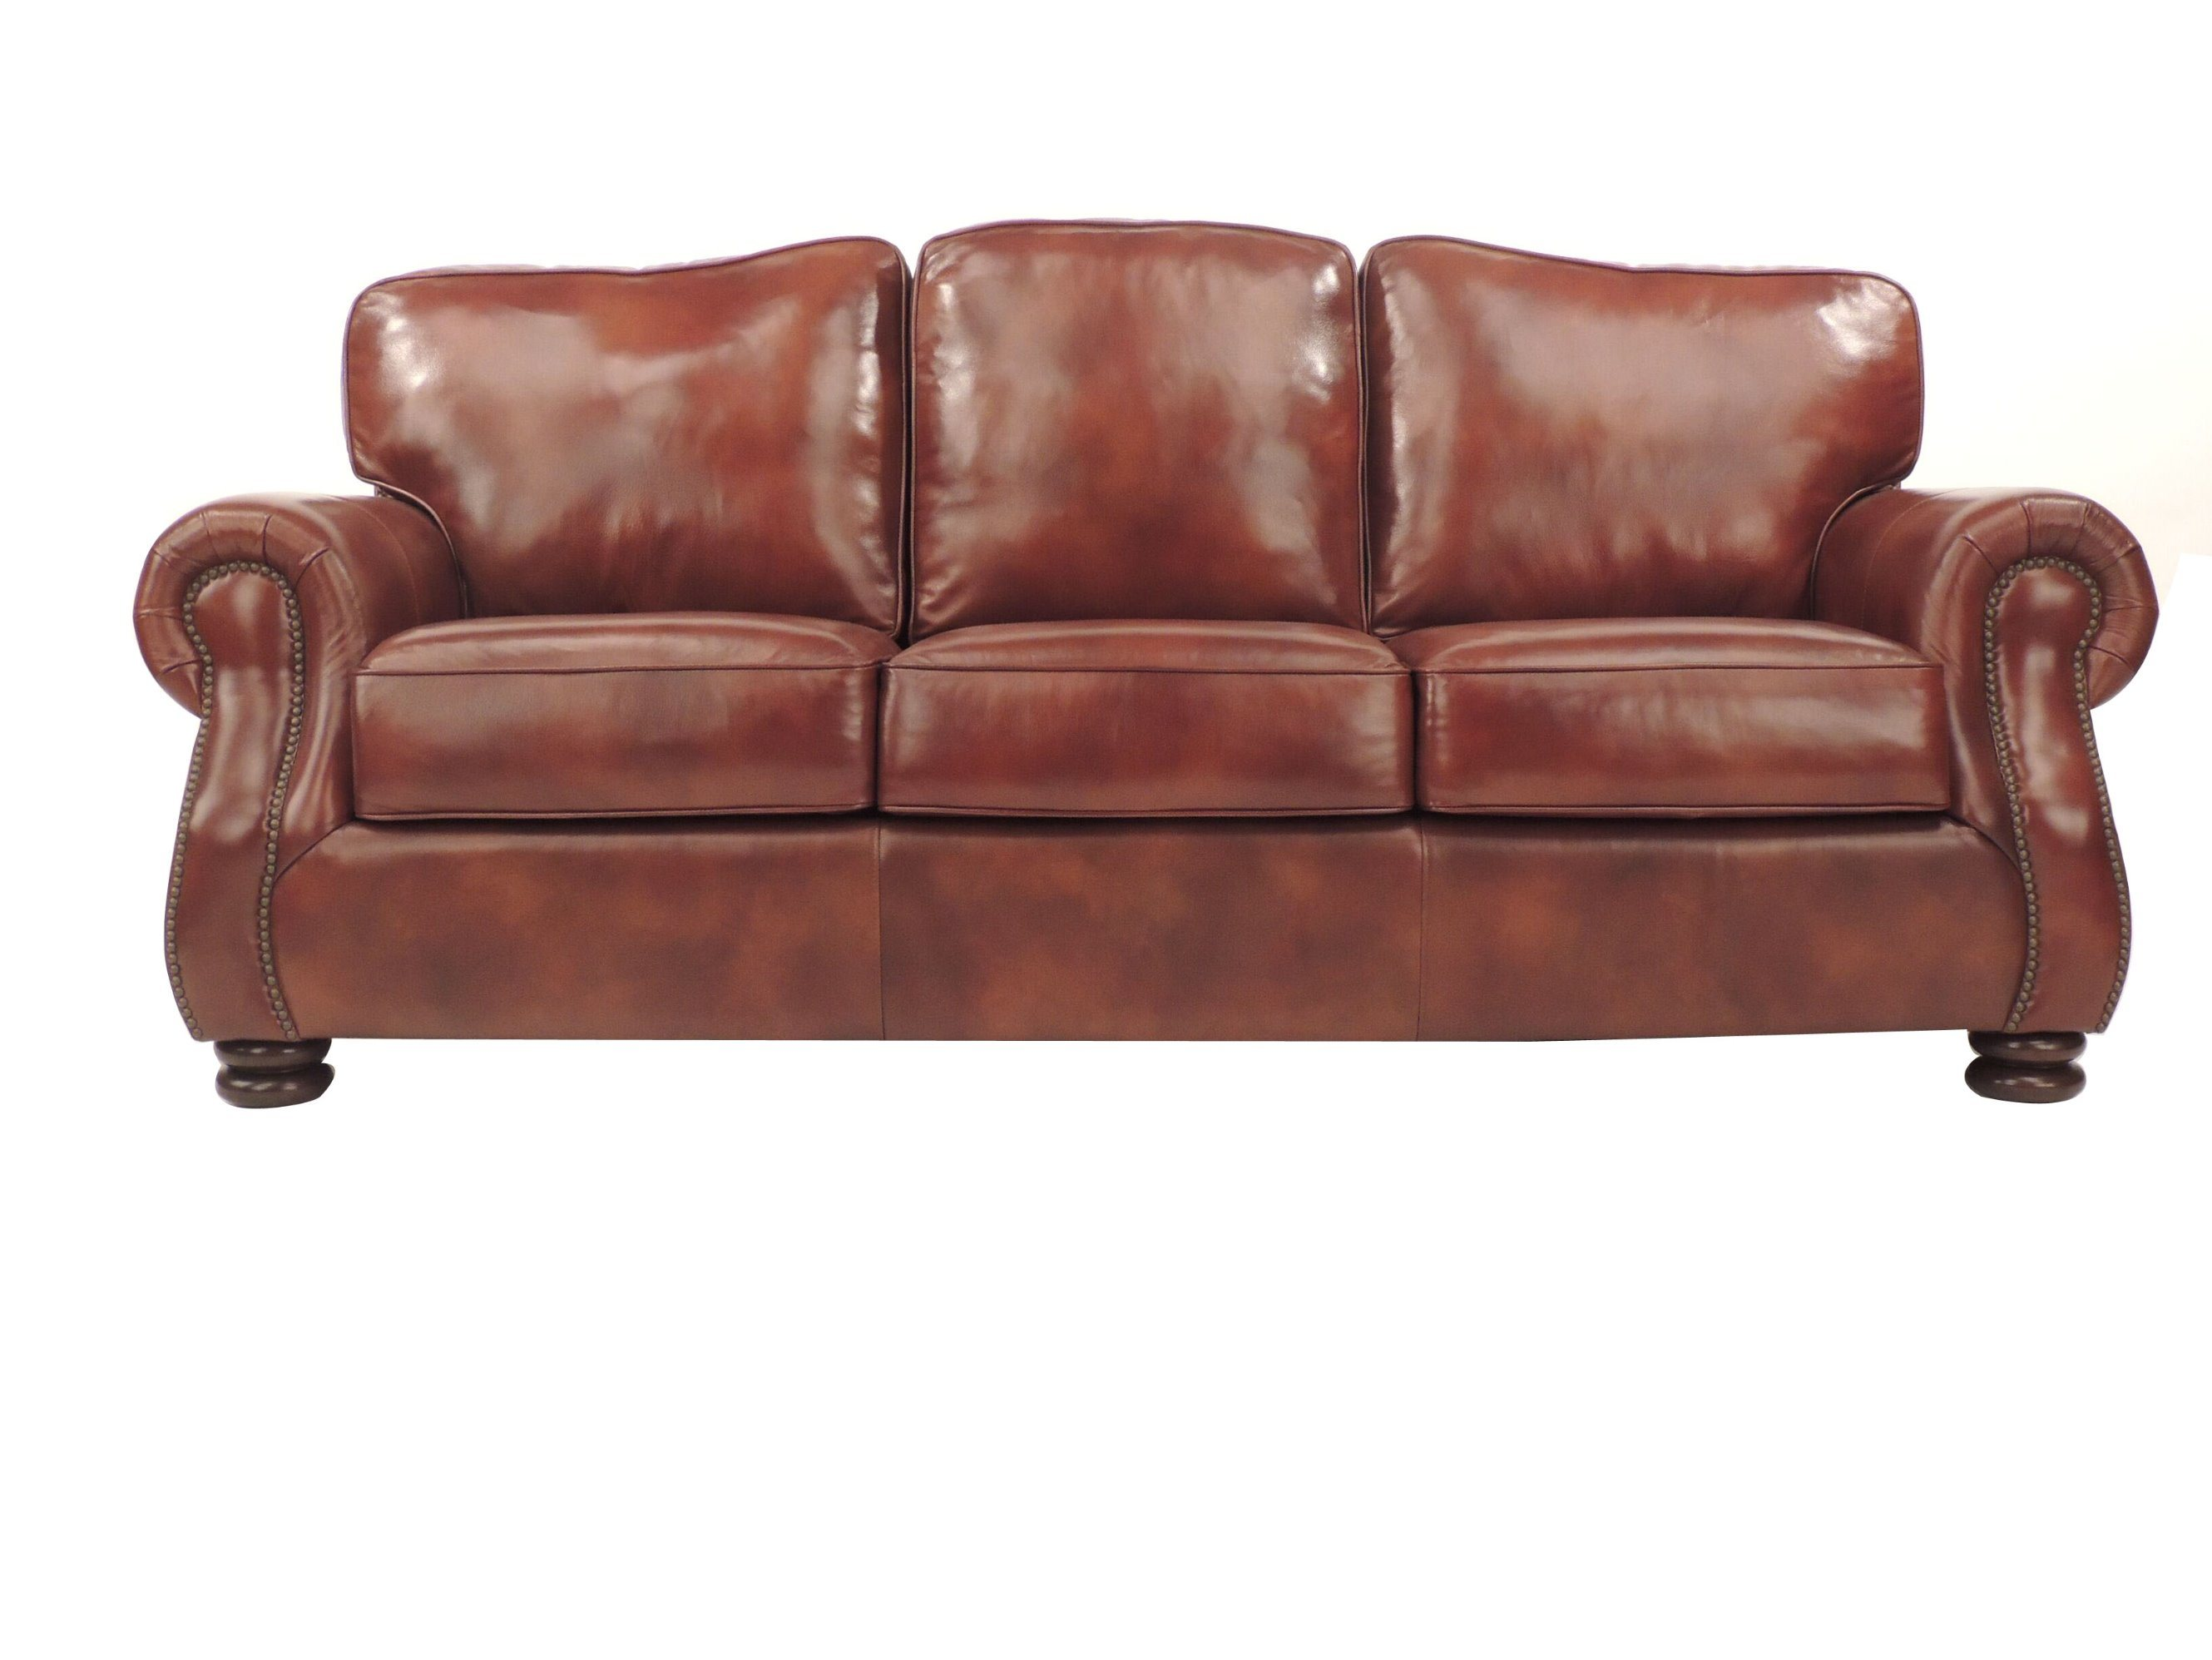 New Arrival L Shape Leather Sofa, Modern Living Room Sofa